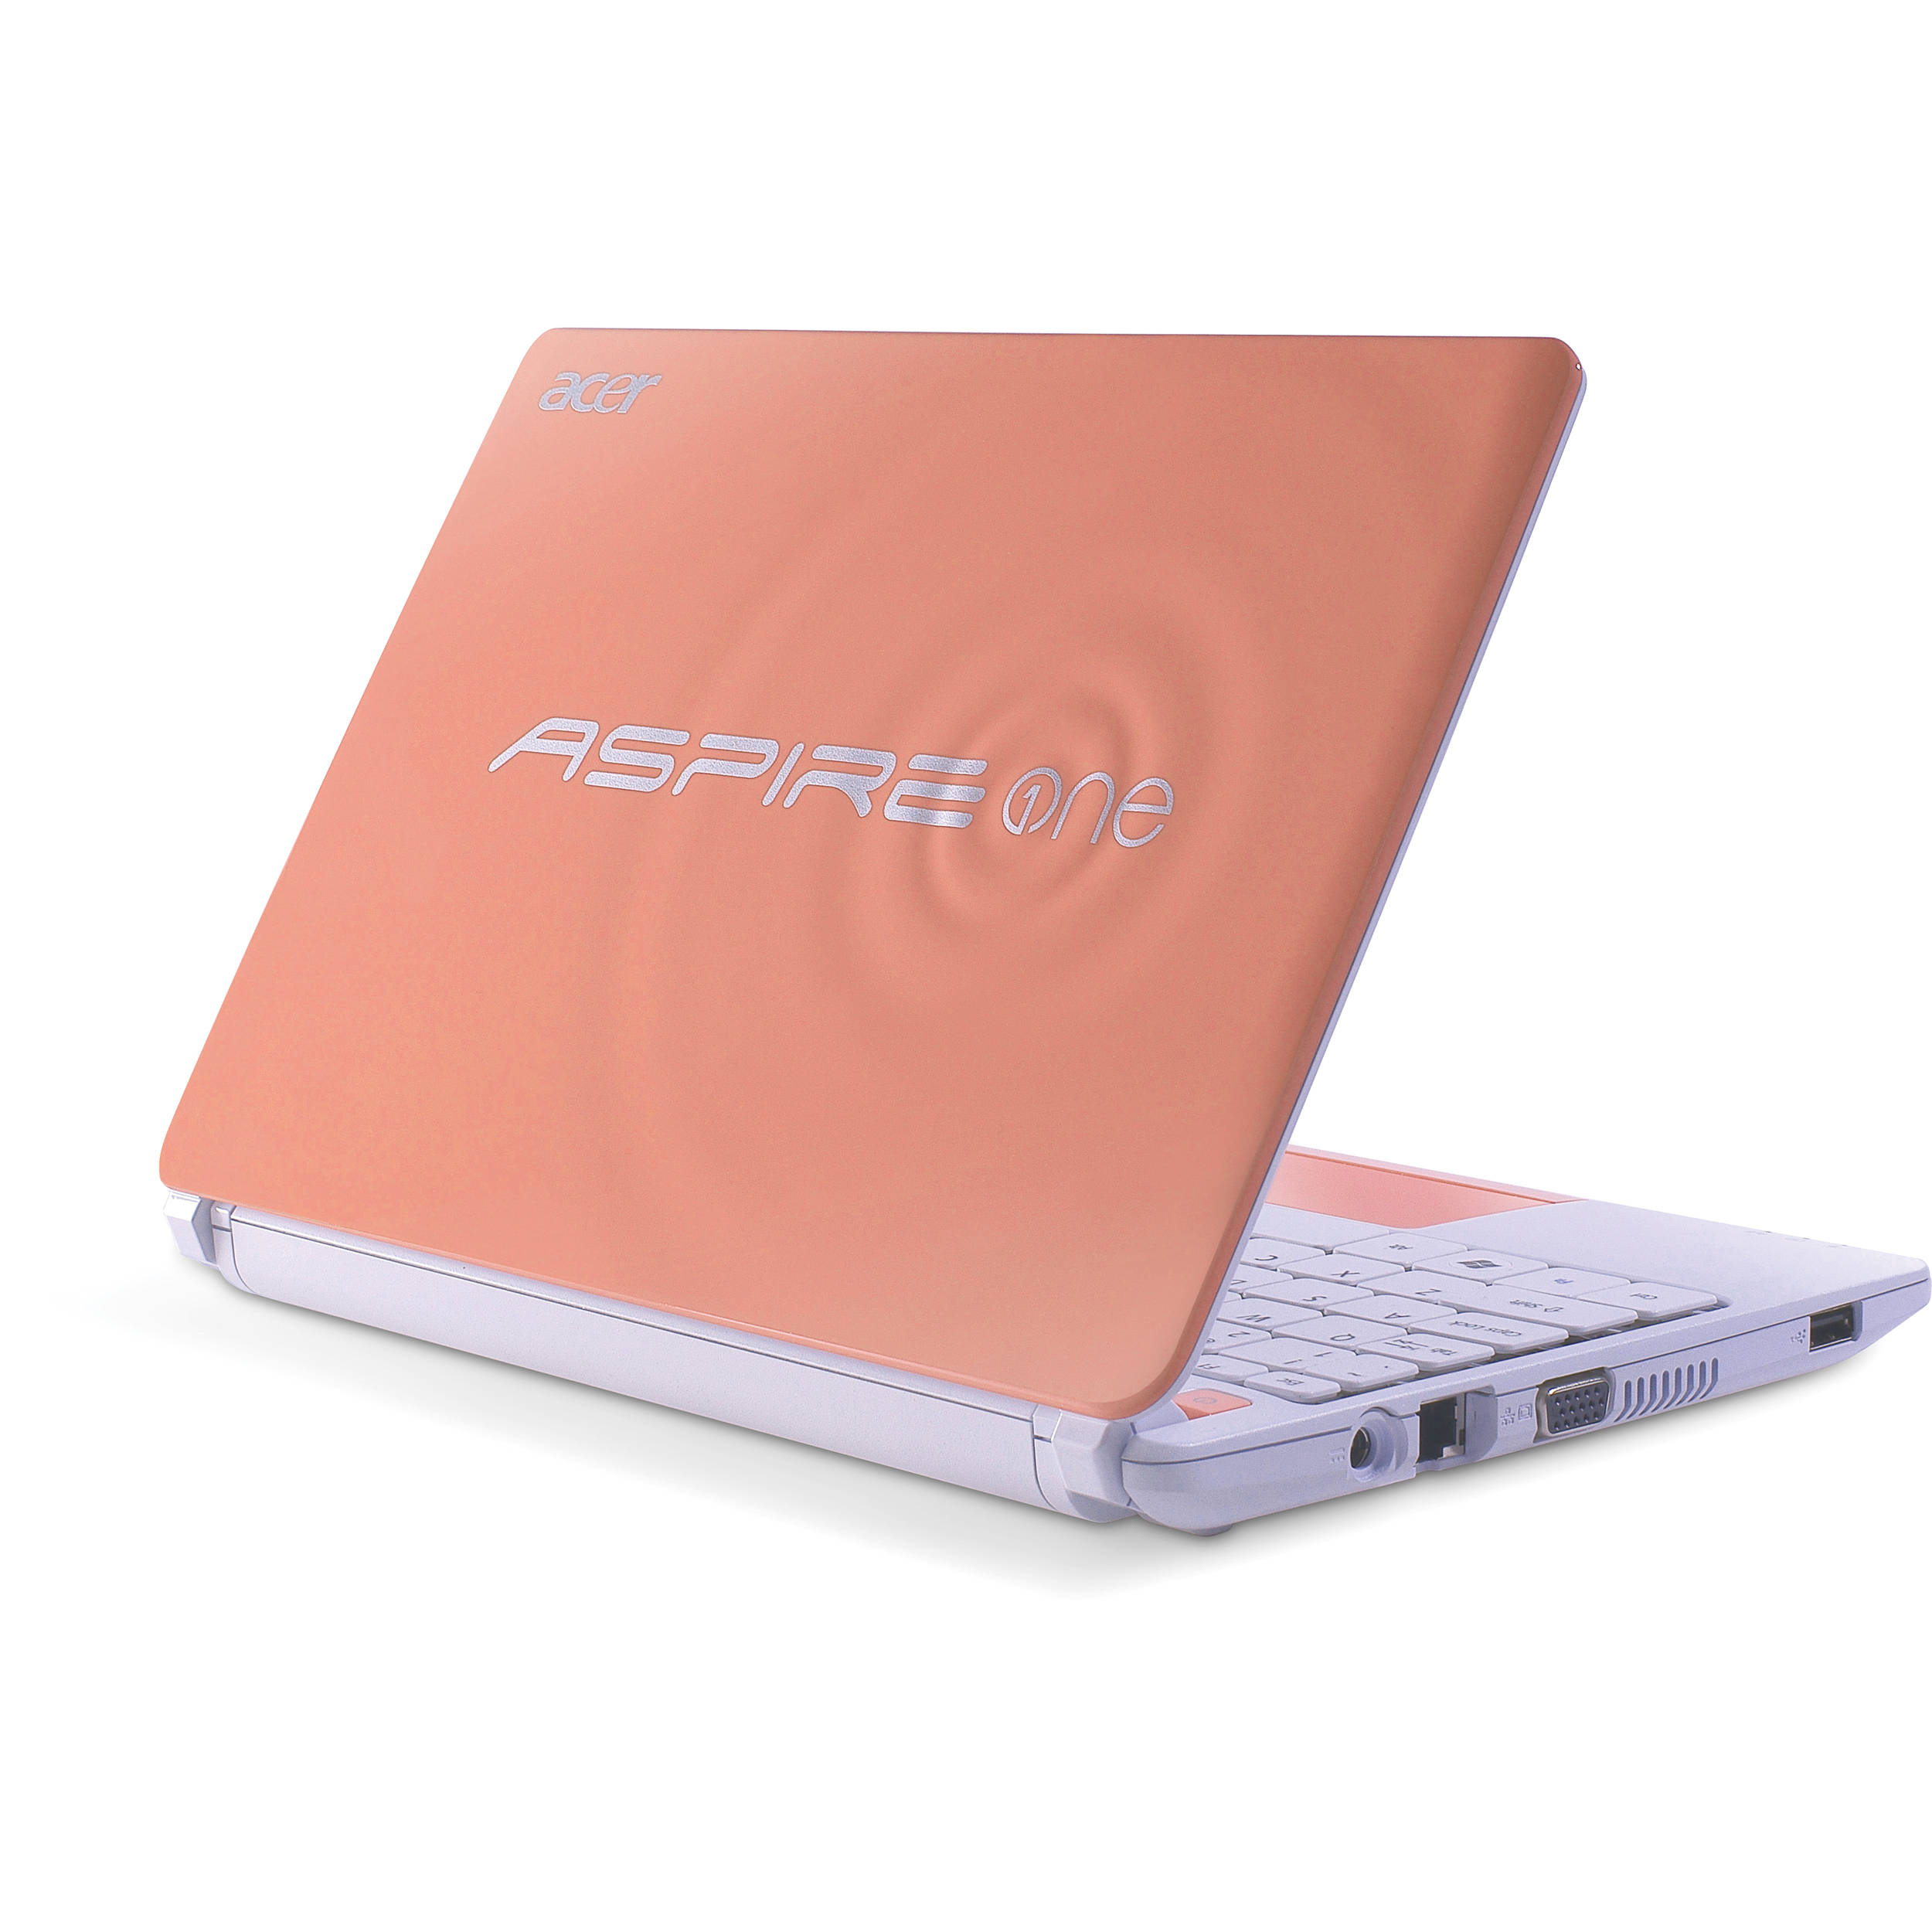 ACER ASPIRE ONE HAPPY 2 WINDOWS 10 DRIVERS